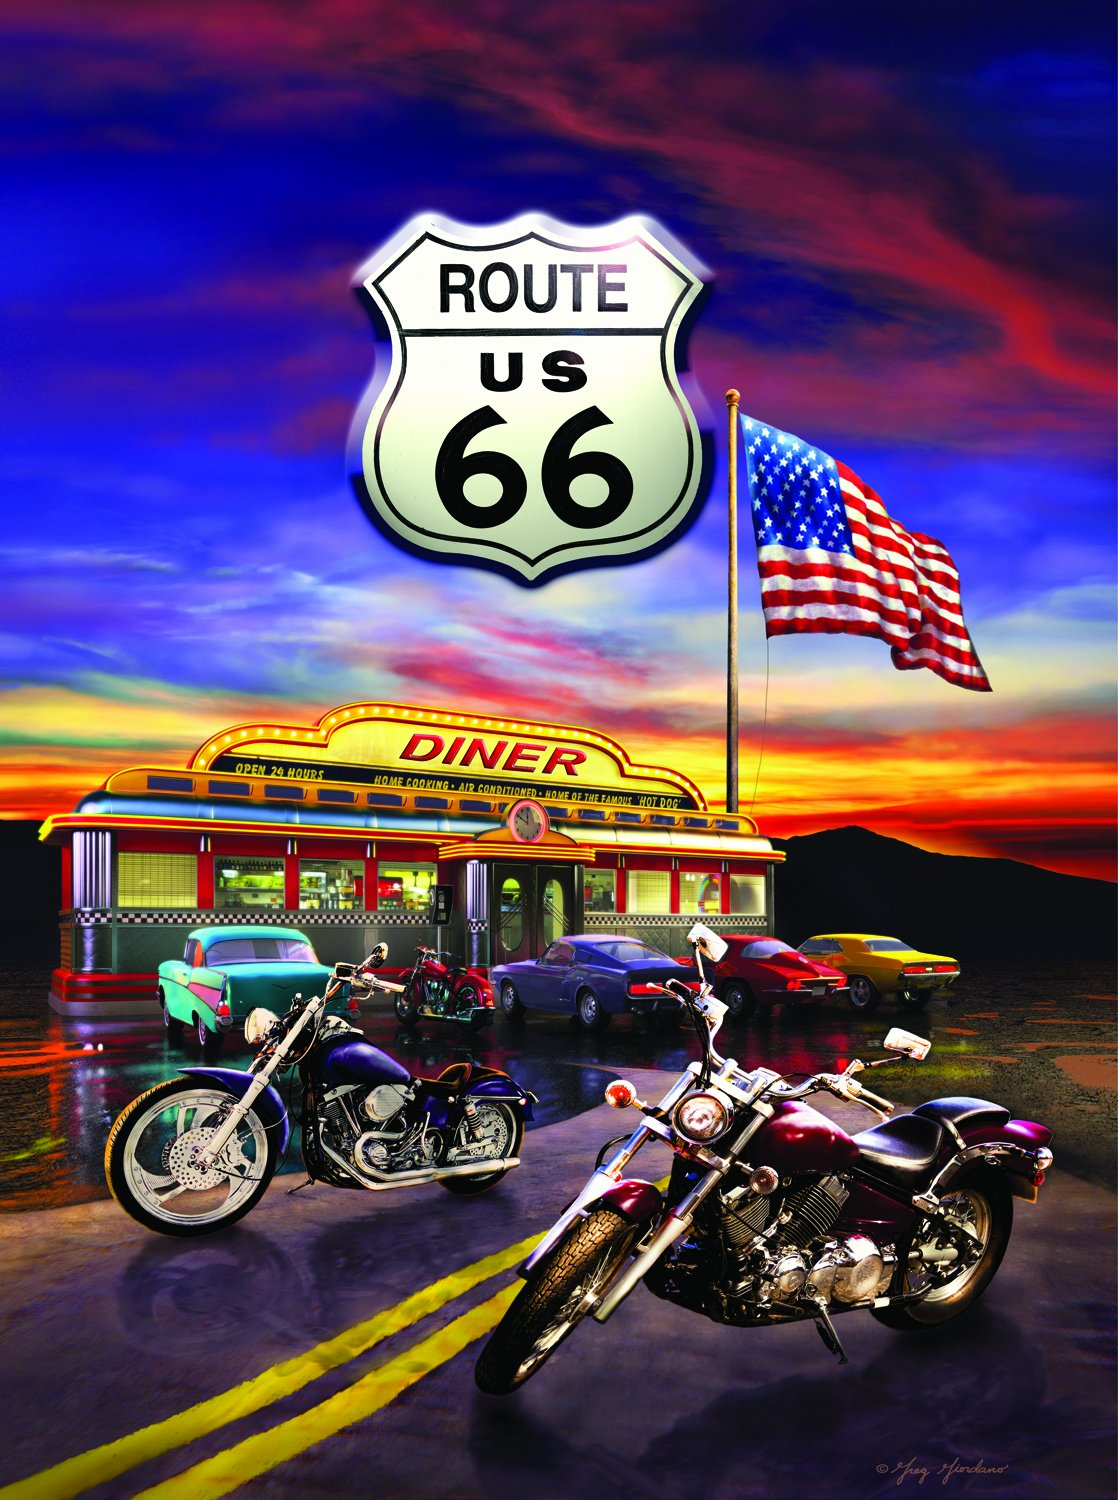 harley davidson puzzle route 66 diner 1000 piece jigsaw 20 x 27 interlocking 692757922508 ebay. Black Bedroom Furniture Sets. Home Design Ideas